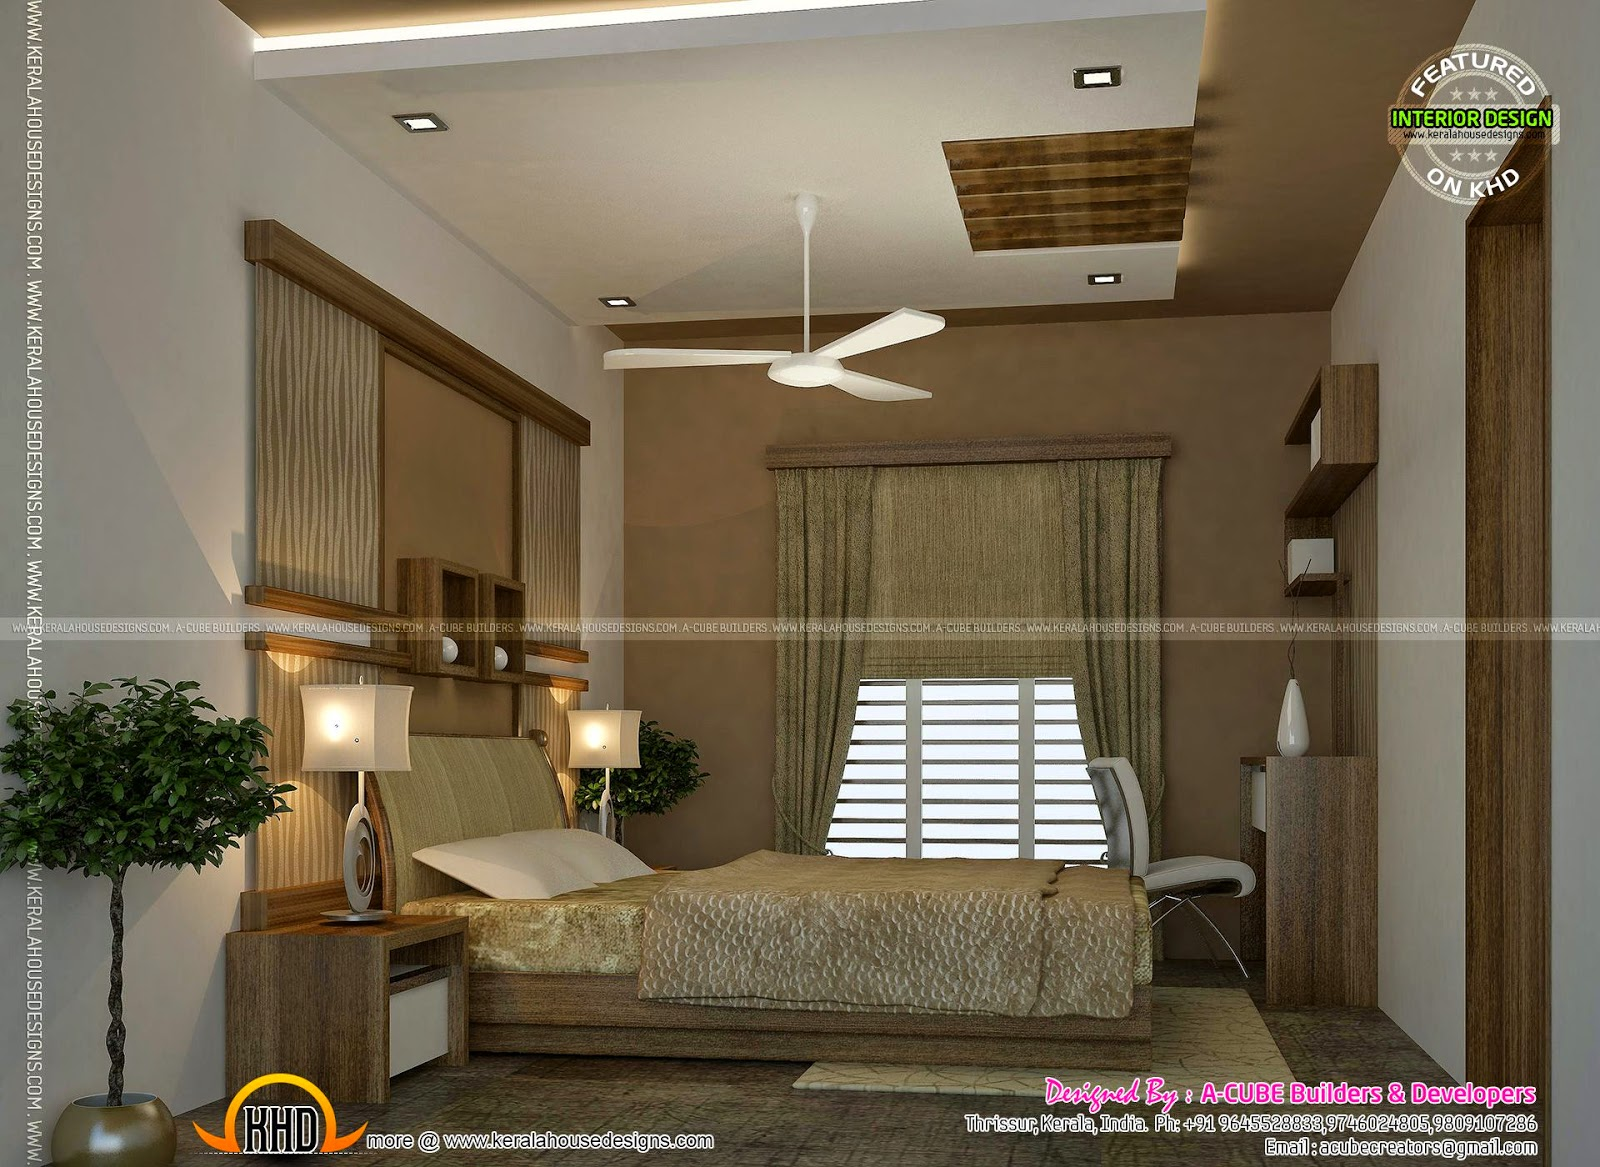 Home Interior Design Pictures Kerala Interior Design Ideas Kerala Home Design And